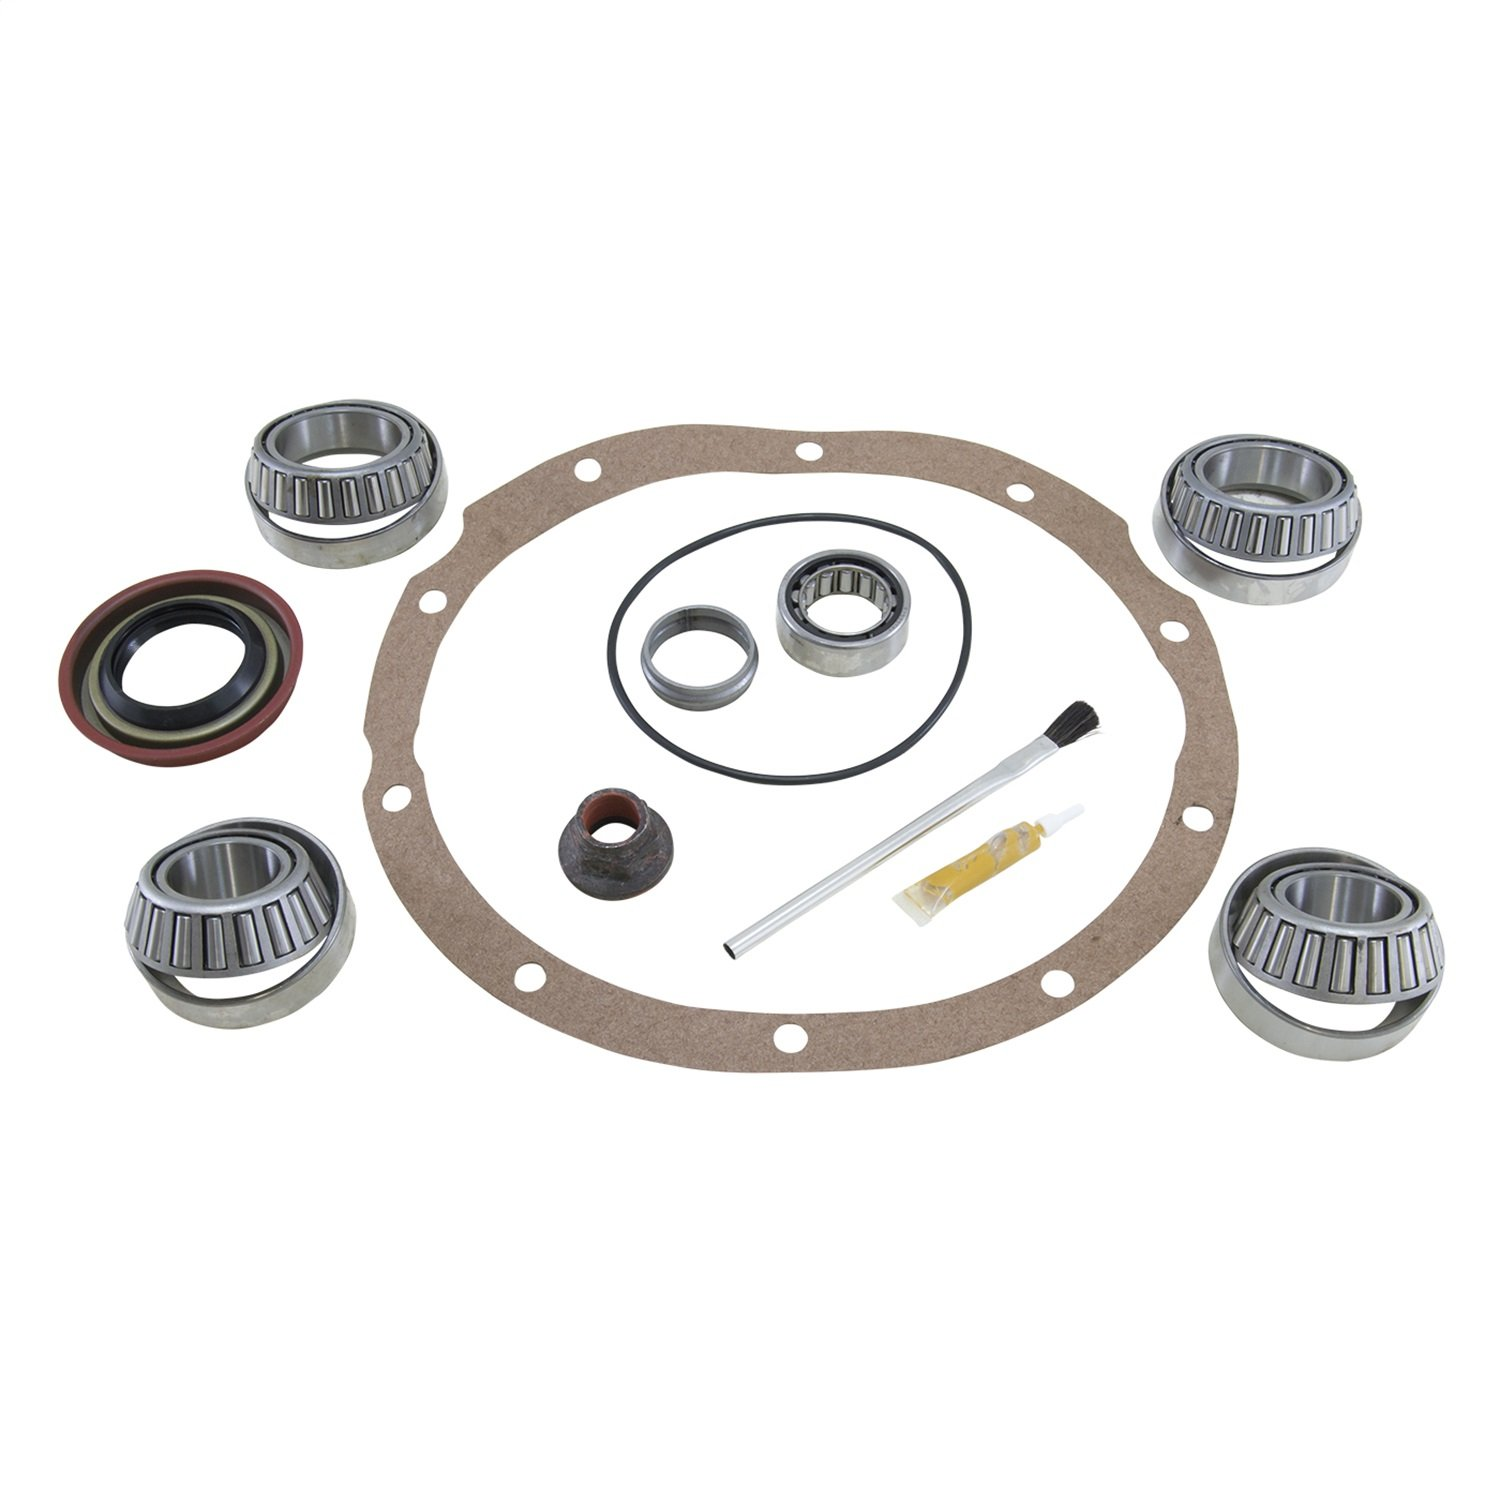 Yukon Gear & Axle (BK F8-AG) Bearing Installation Kit with Aftermarket Positraction/Locker for Ford 8 Differential